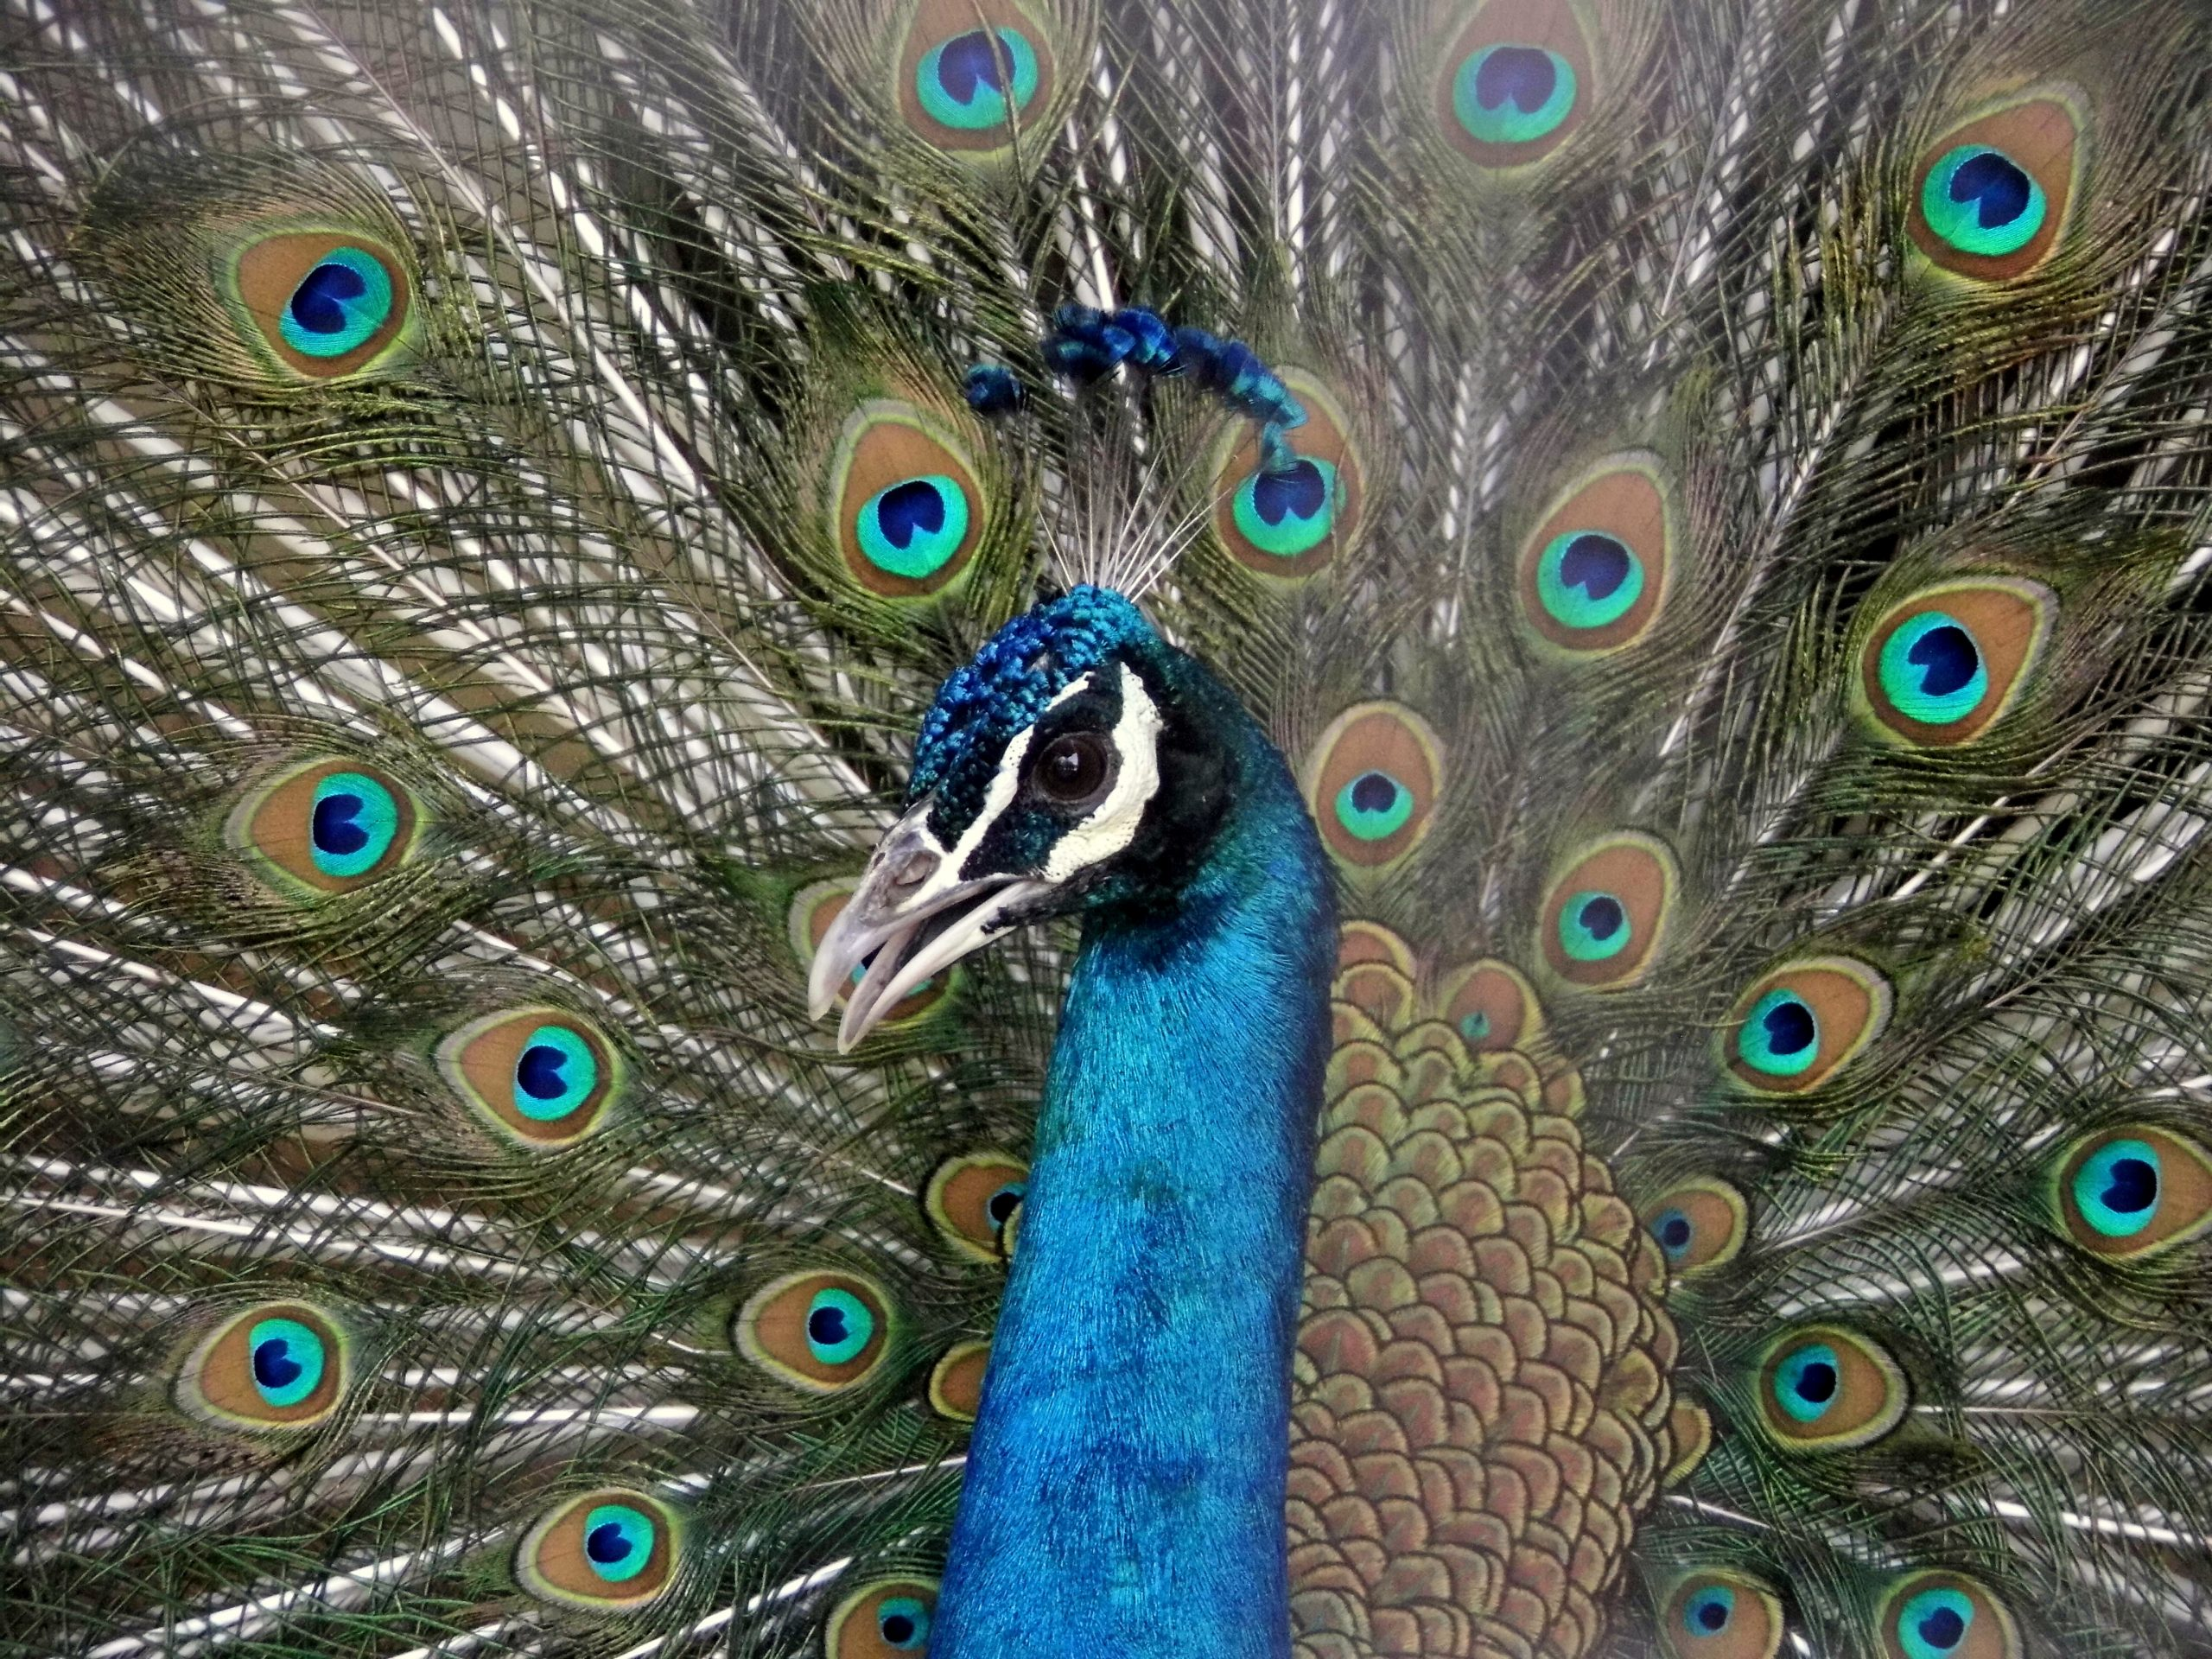 Plumage of a peacock